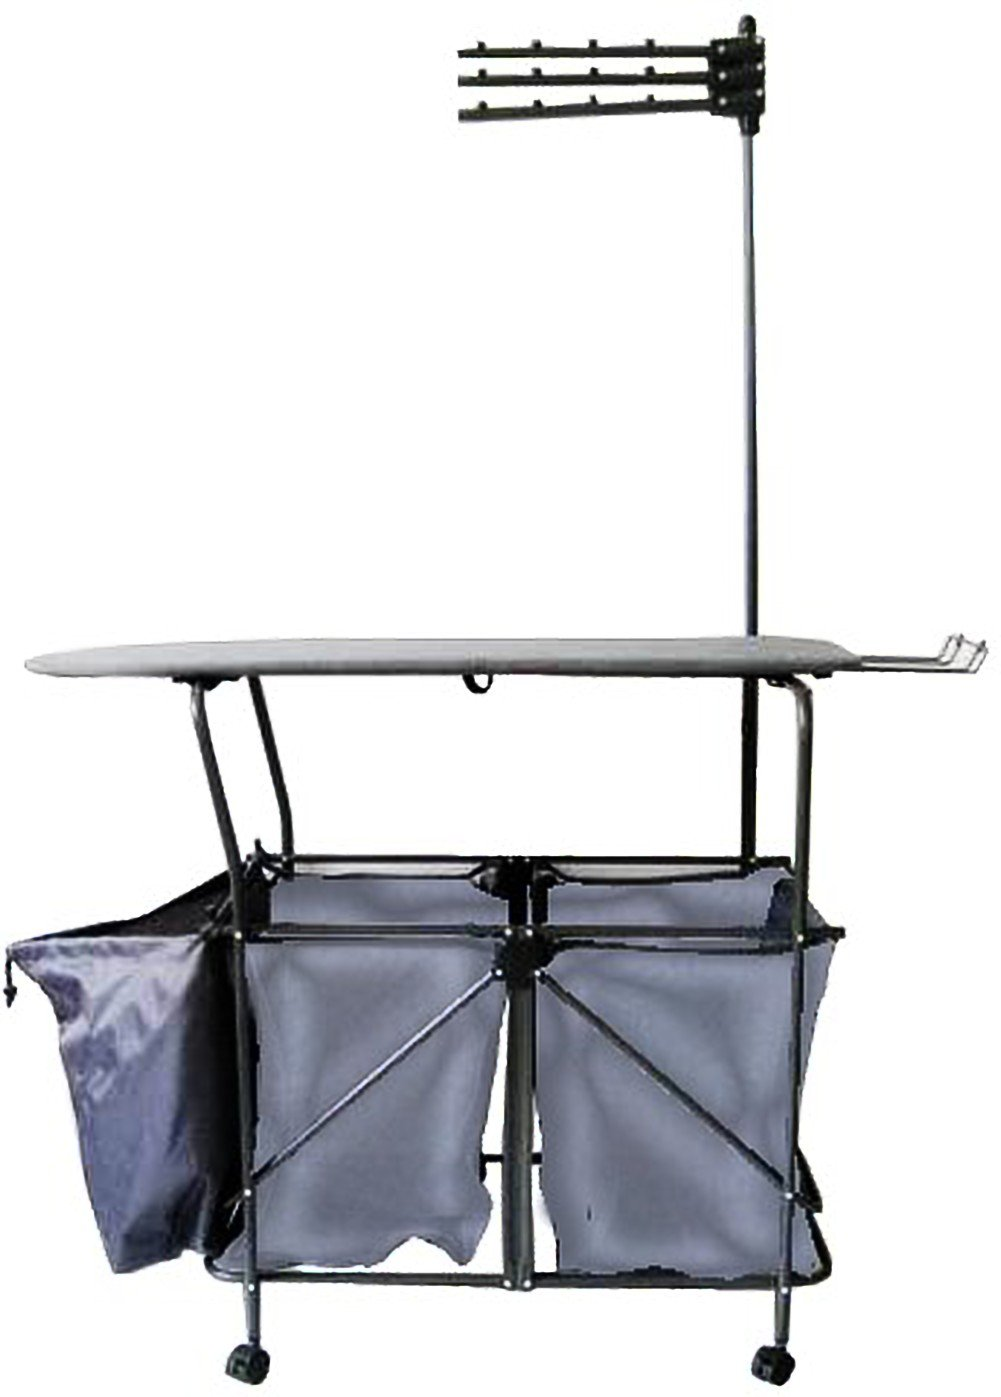 Pearington ZEN-12896  Portable Home/Business Laundry Sorting, Ironing Board, Folding Station Cart, 47'' Length x 17'' Width x 67'' Height